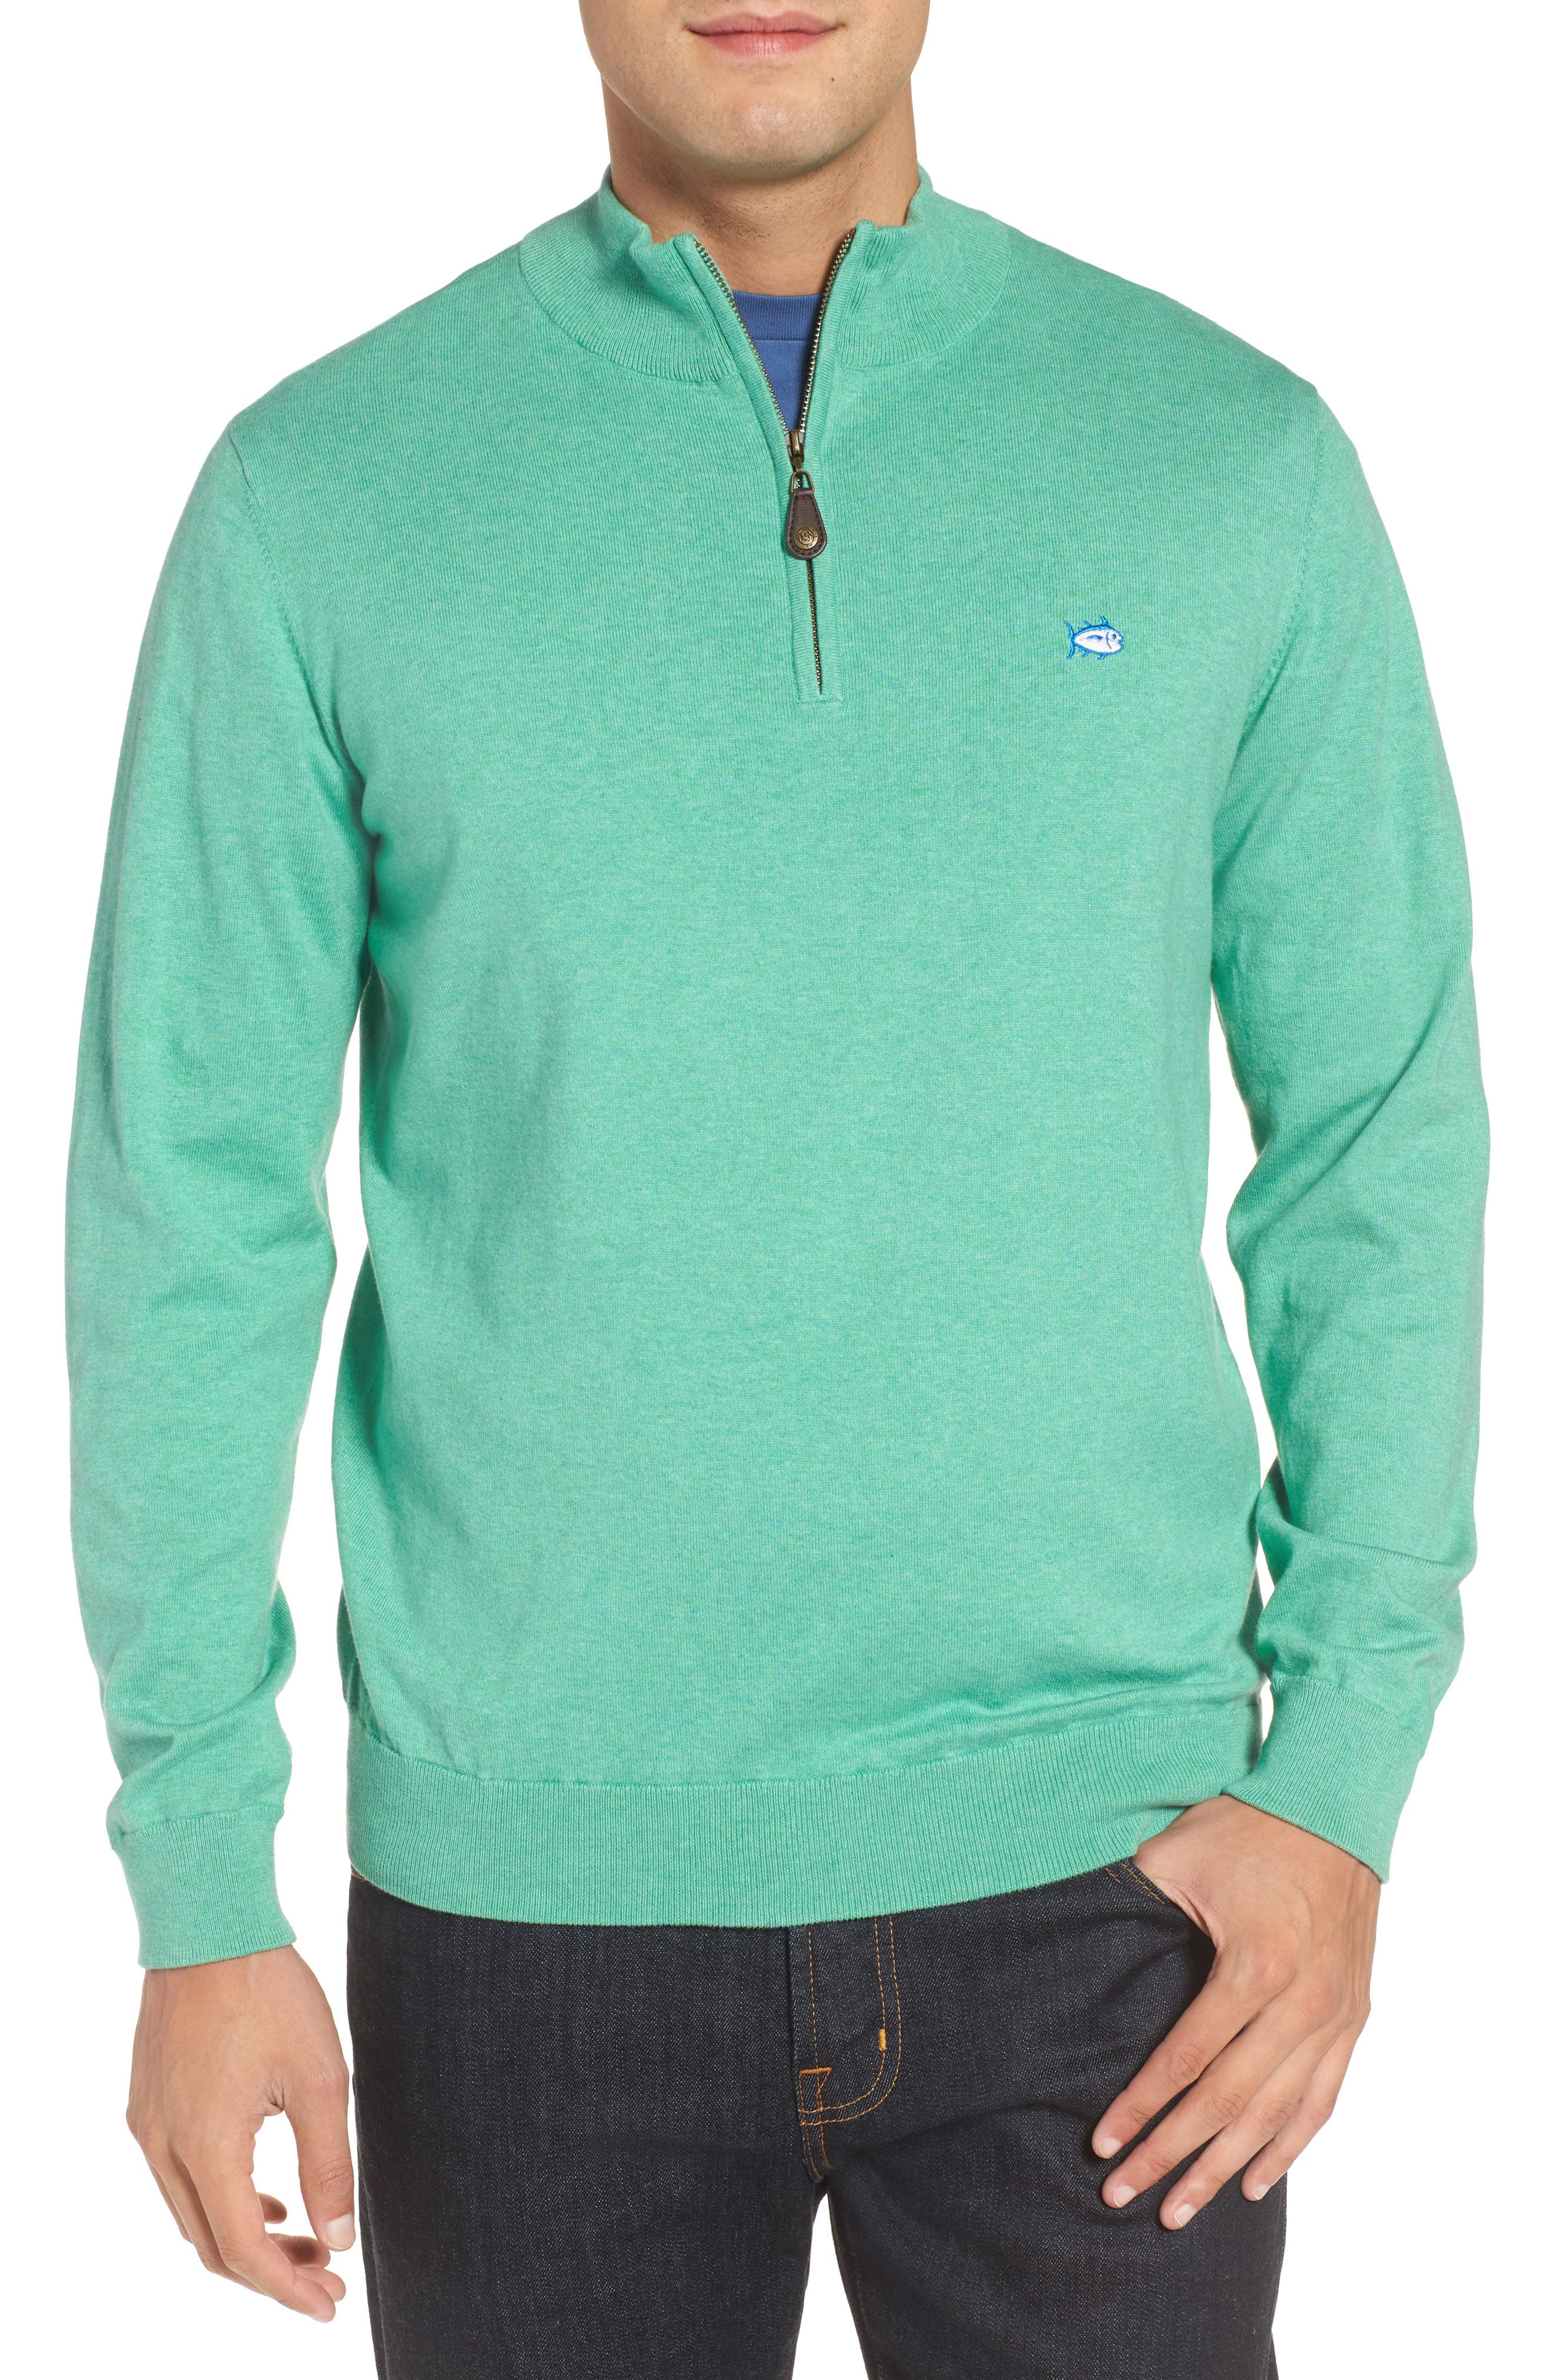 Southern Tide Marina Cay Quarter Zip Pullover